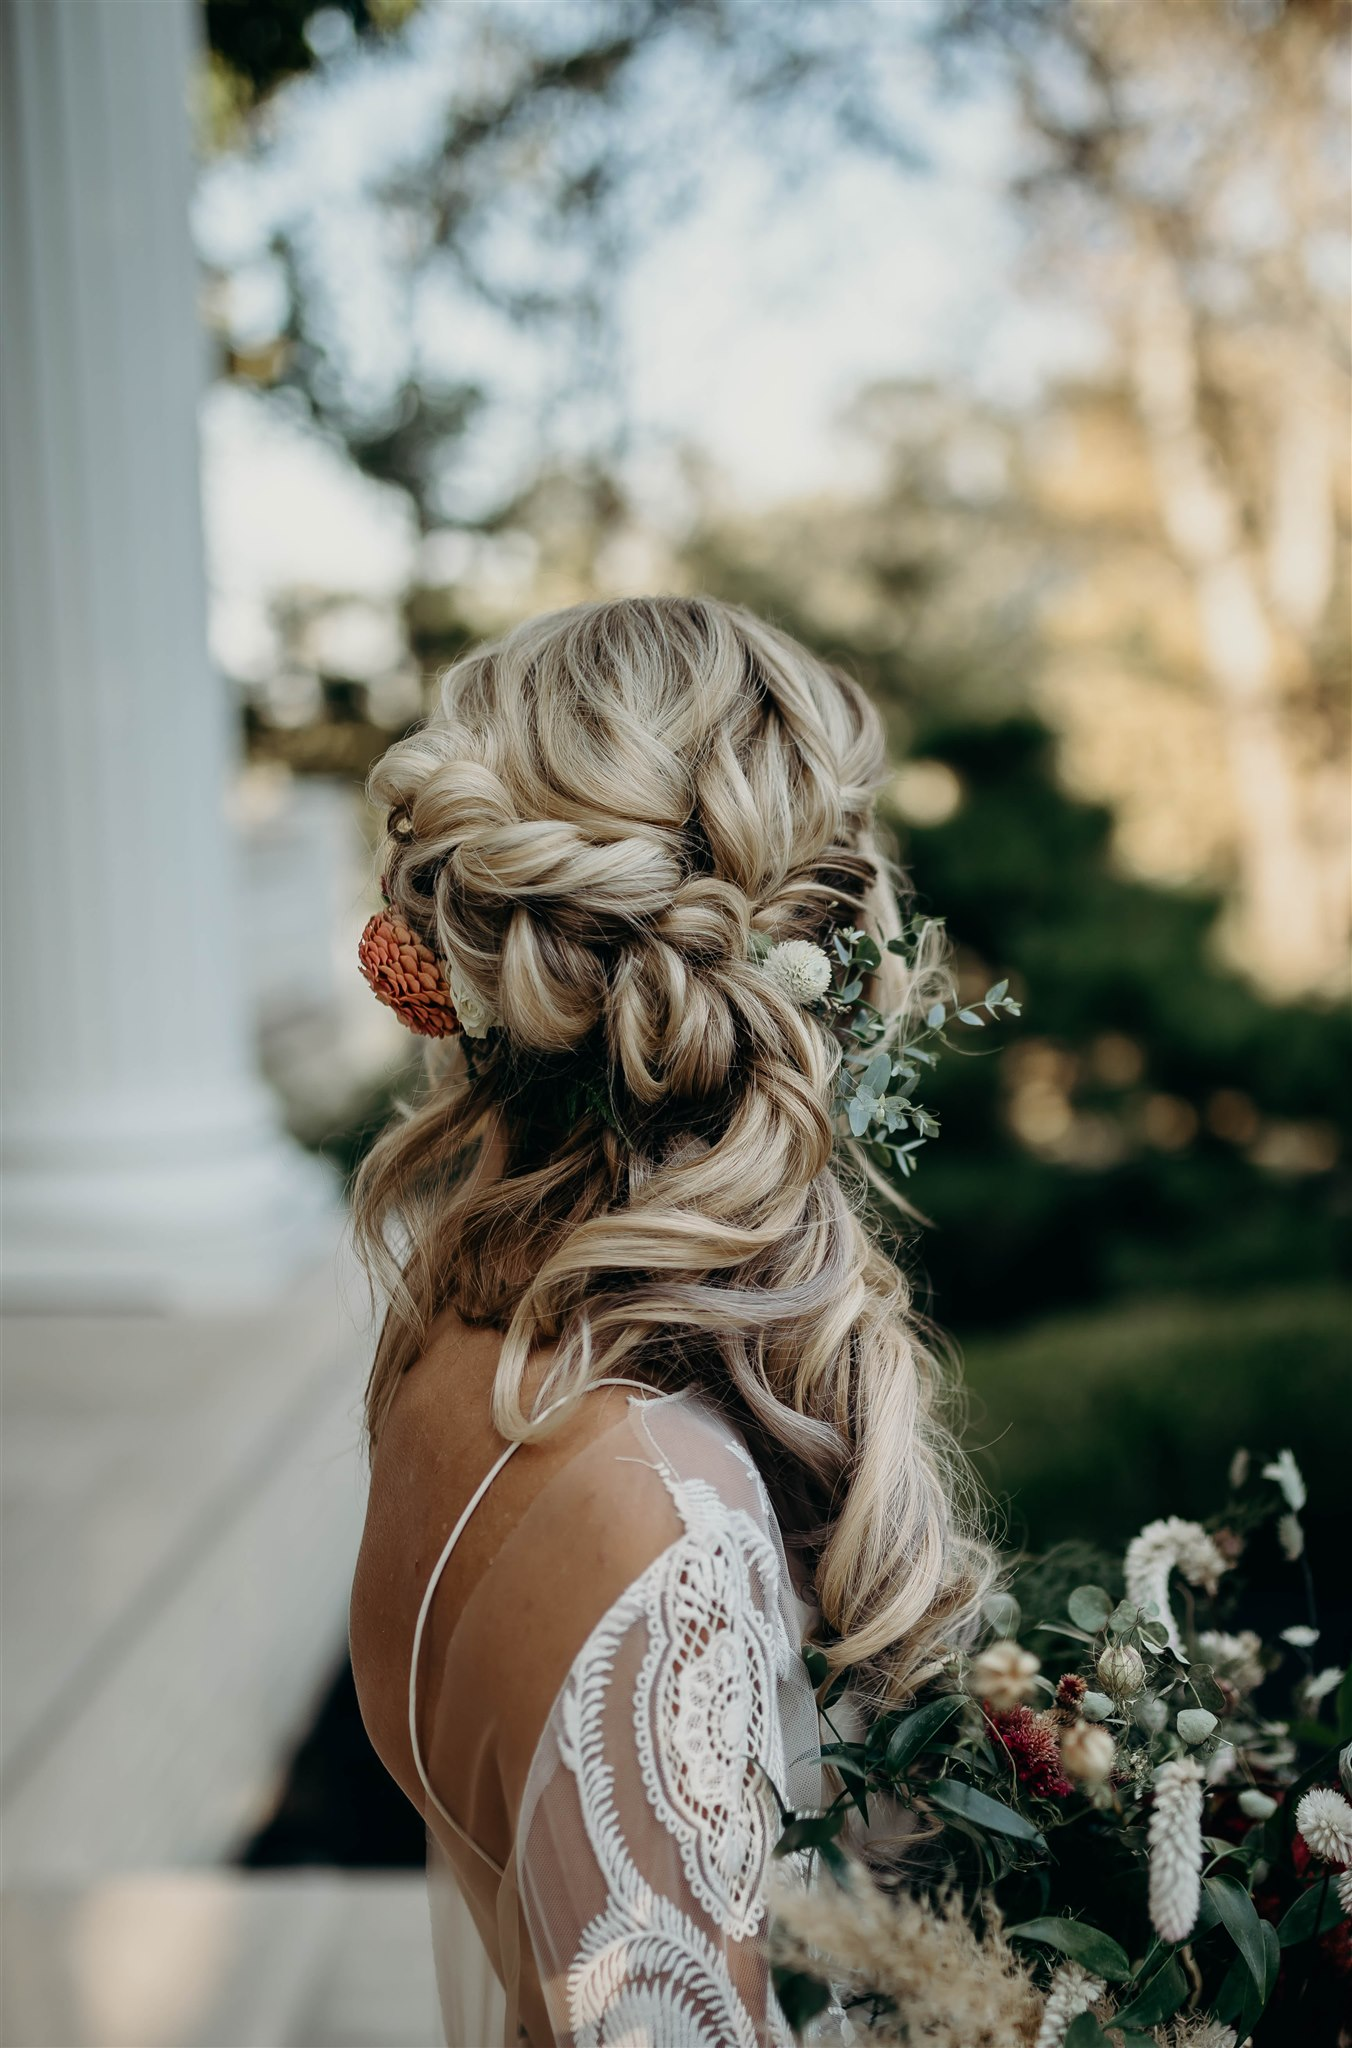 Boho bridal braid for Boho Winter Wedding Styled Shoot by Riley Gardner Photography featured on Nashville Bride Guide